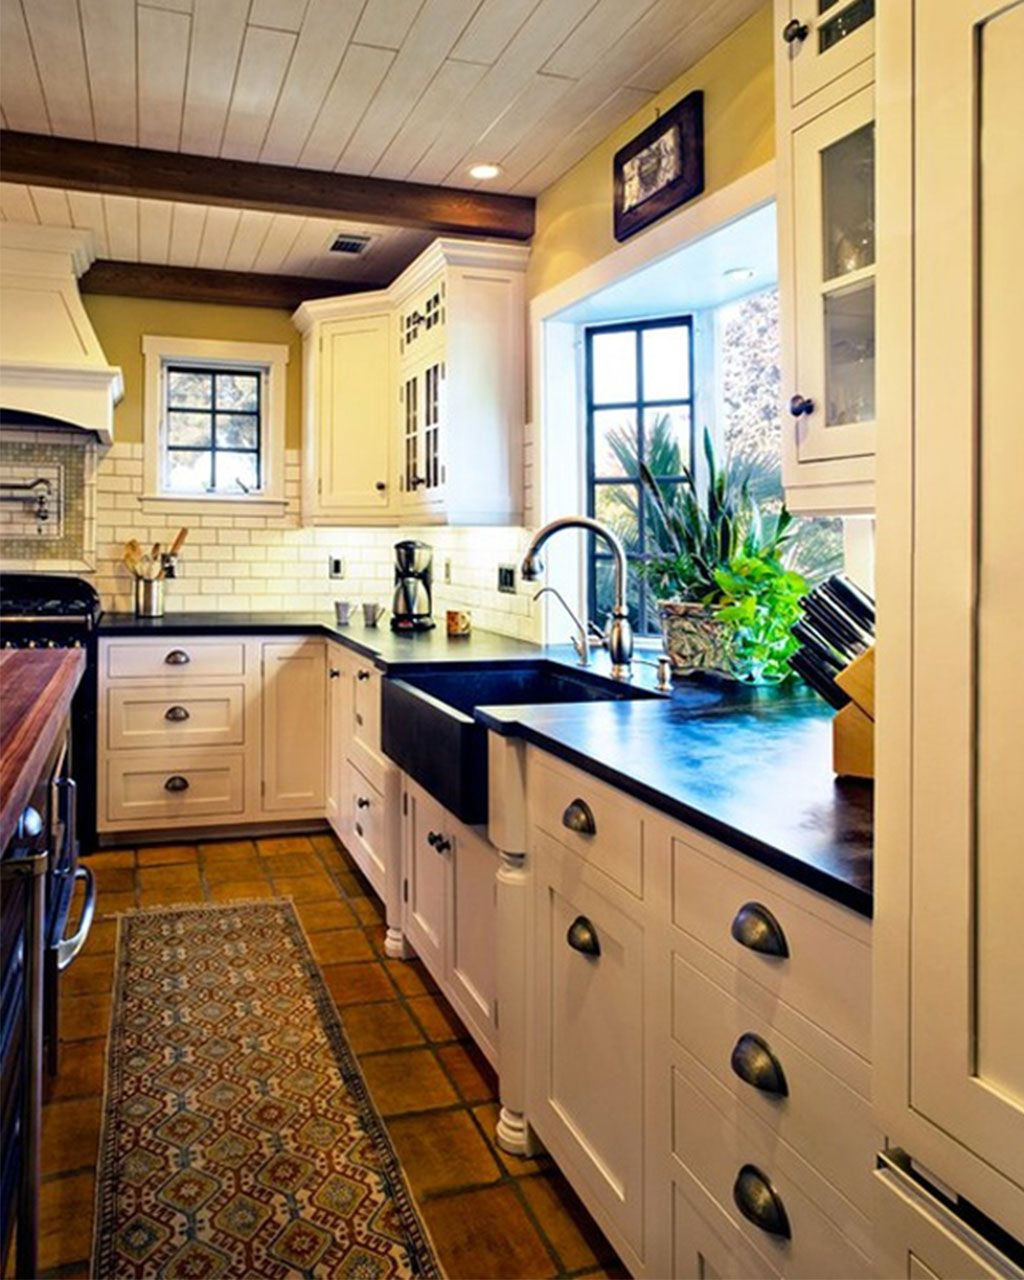 Current Trends In Kitchen Design Enchanting Whether Contemporary Or Traditional  Black Countertops Are A Huge Design Decoration